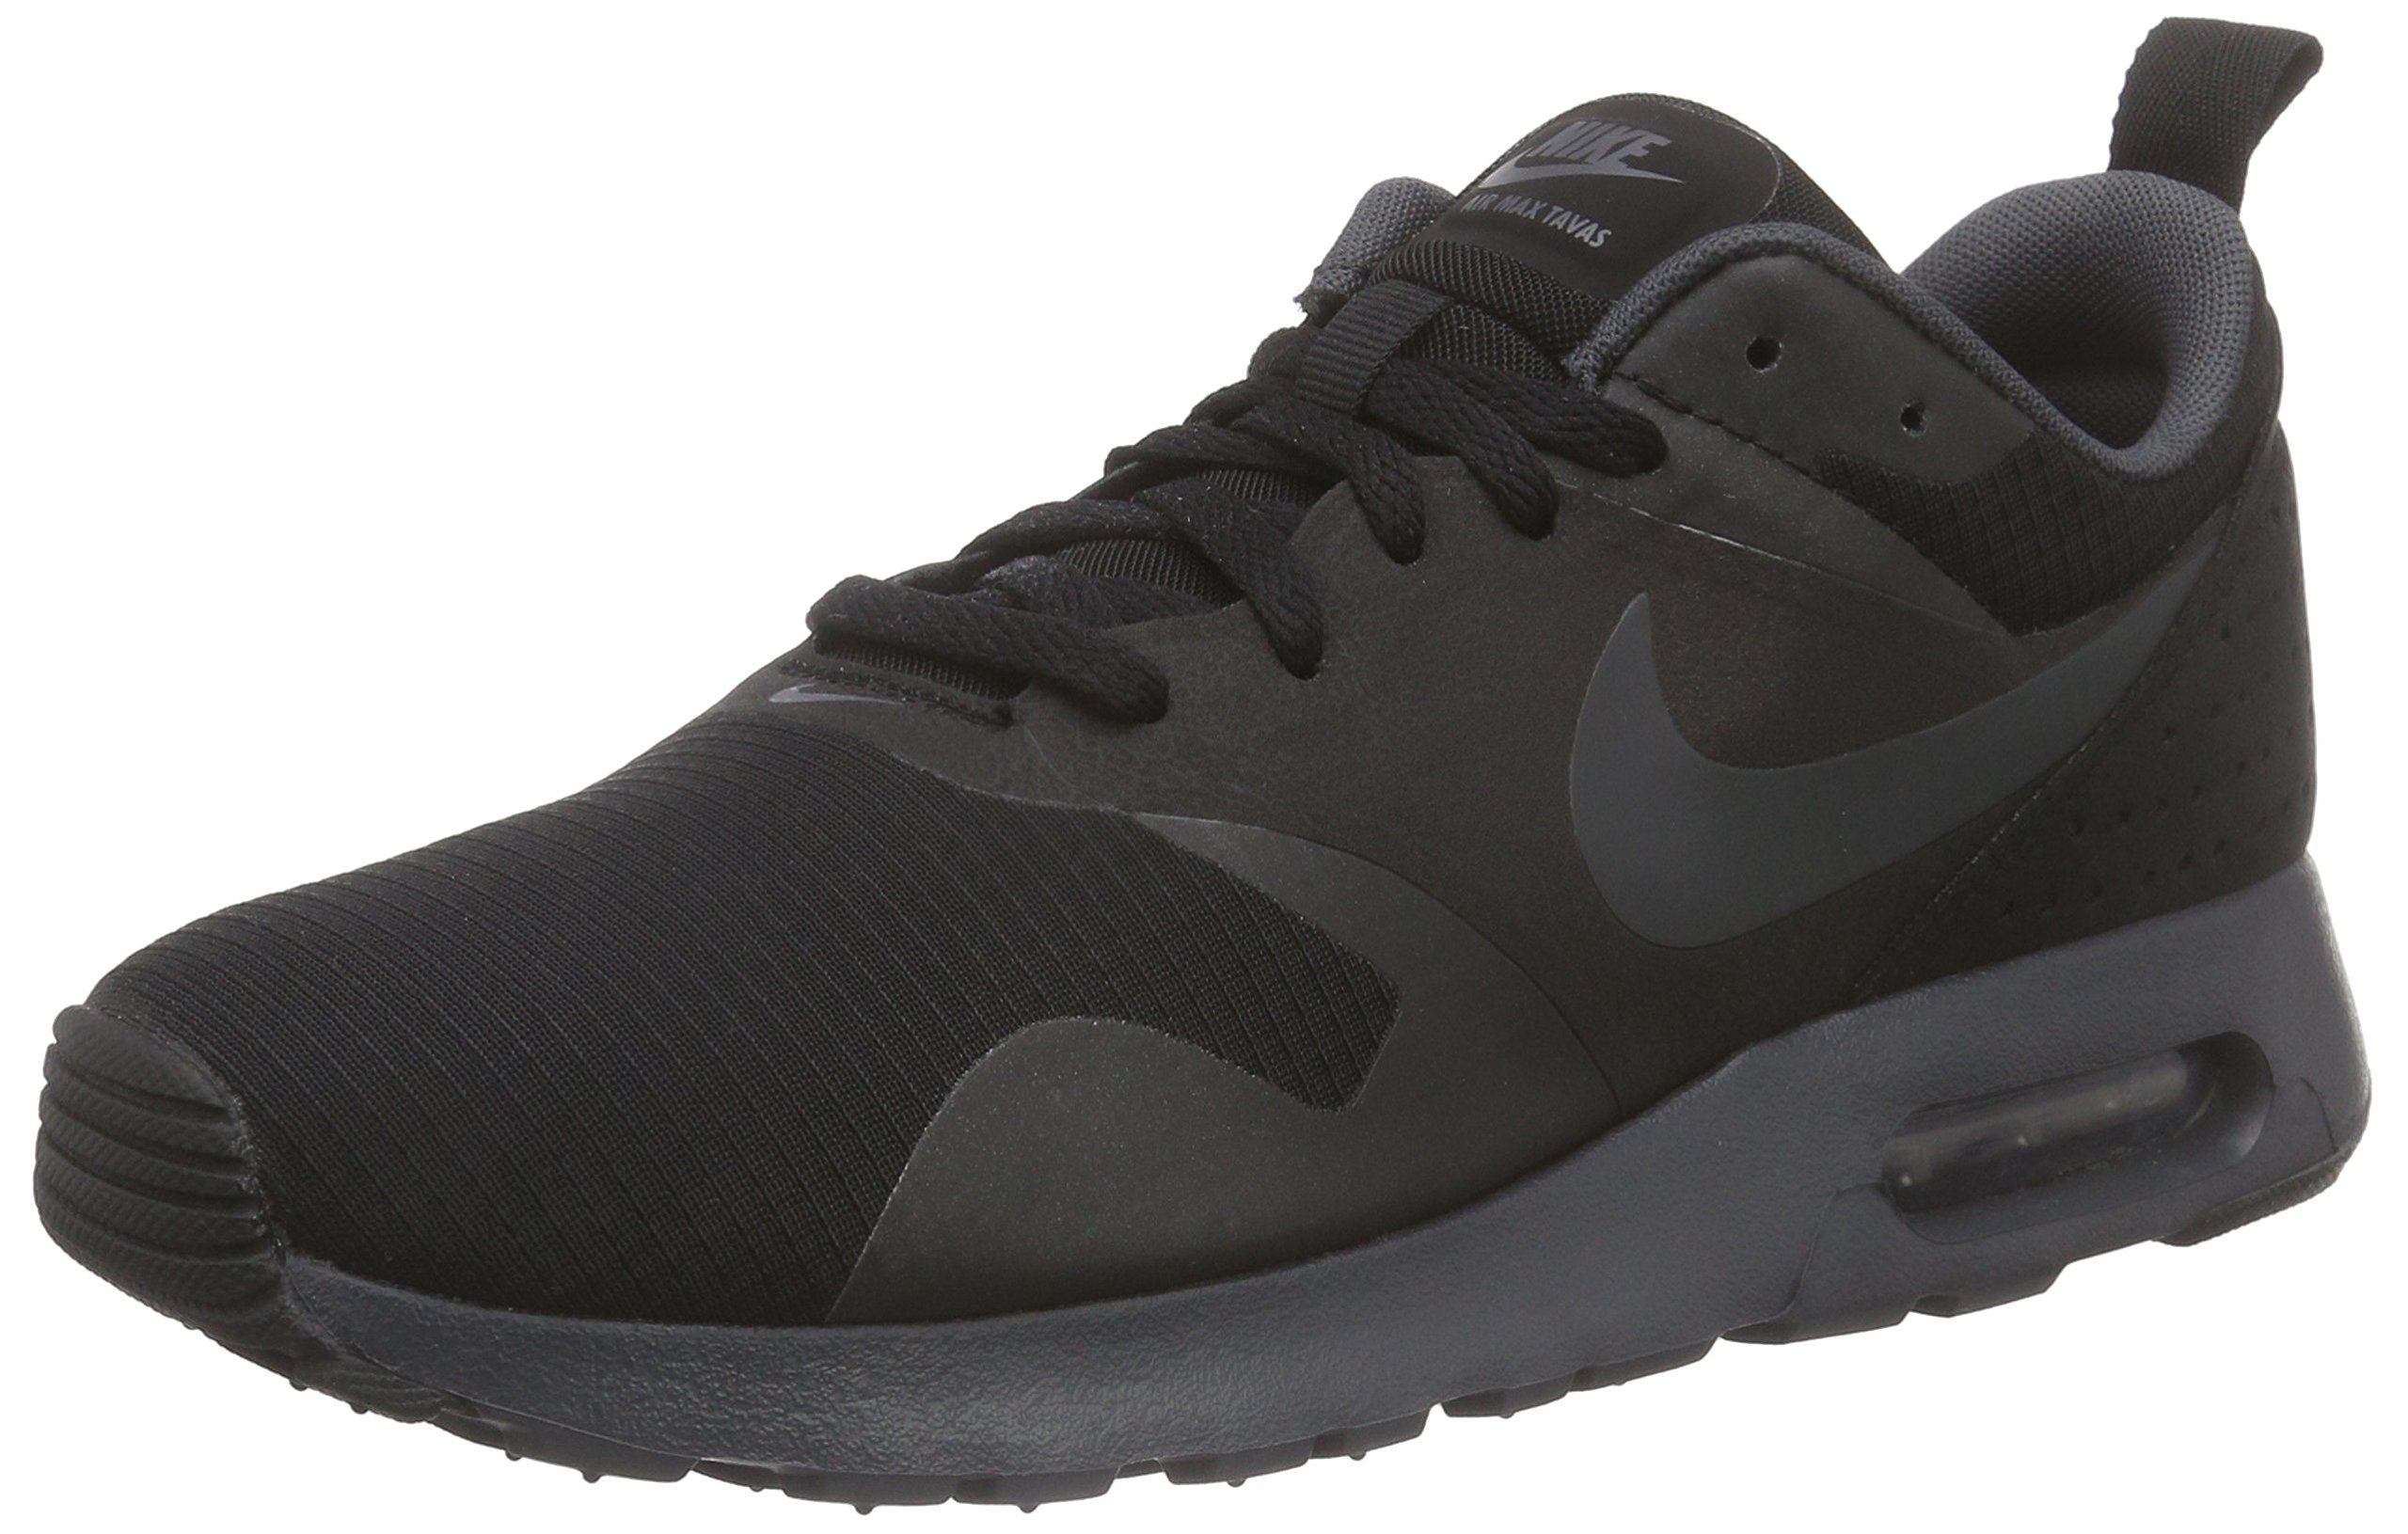 Nike Mens Air Max Tavas Running Shoe (BlackAnthracite Black, Size 9.5 M US)